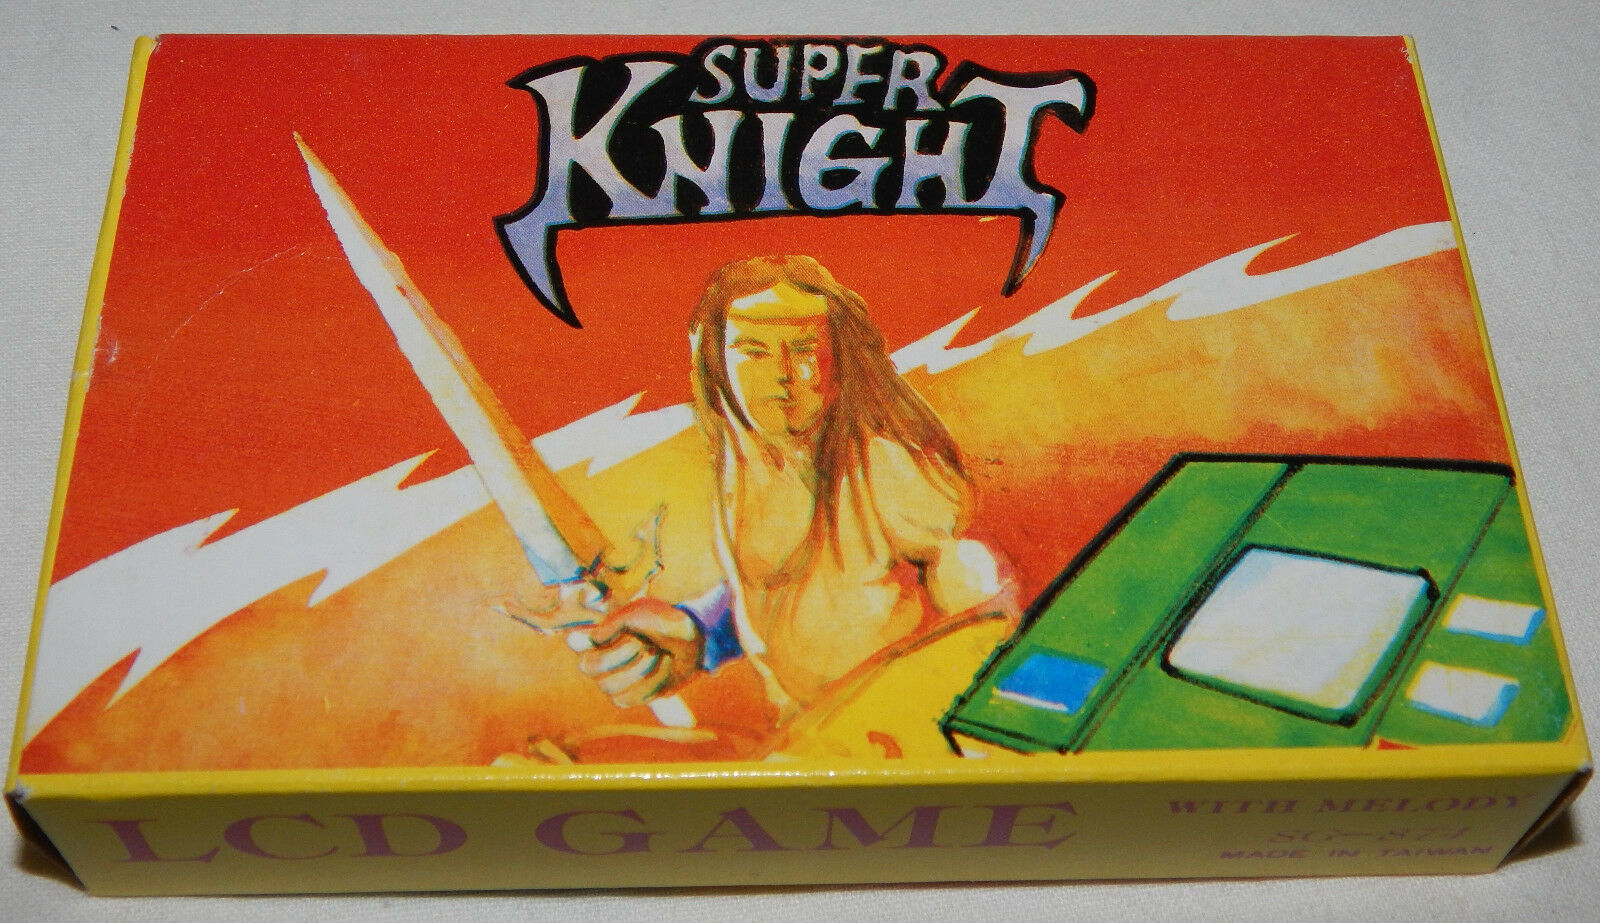 RARE VINTAGE SUPER KNIGHT LCD HANDHELD GAME BY SUNWING SUN WING IN BOX BOXED NOS